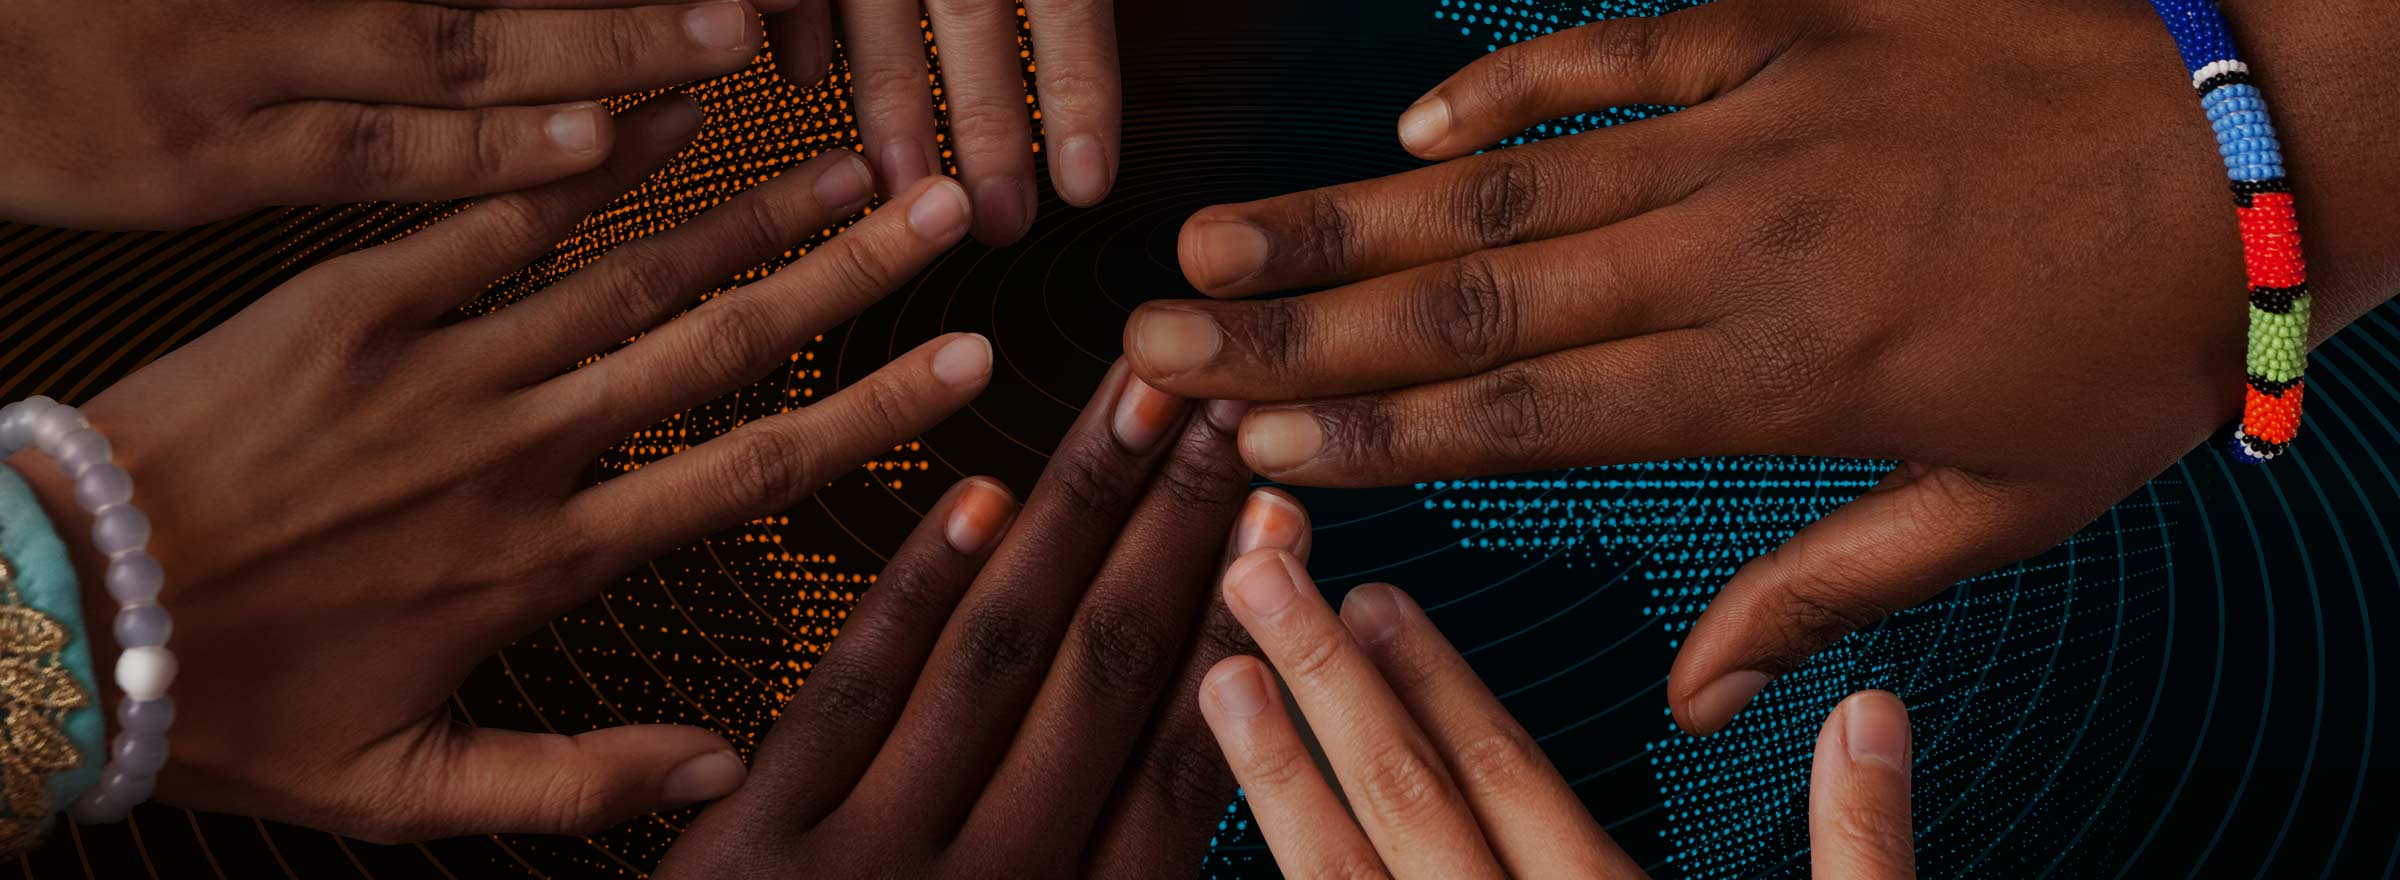 hands of people from many races with fingers outstretched toward each other